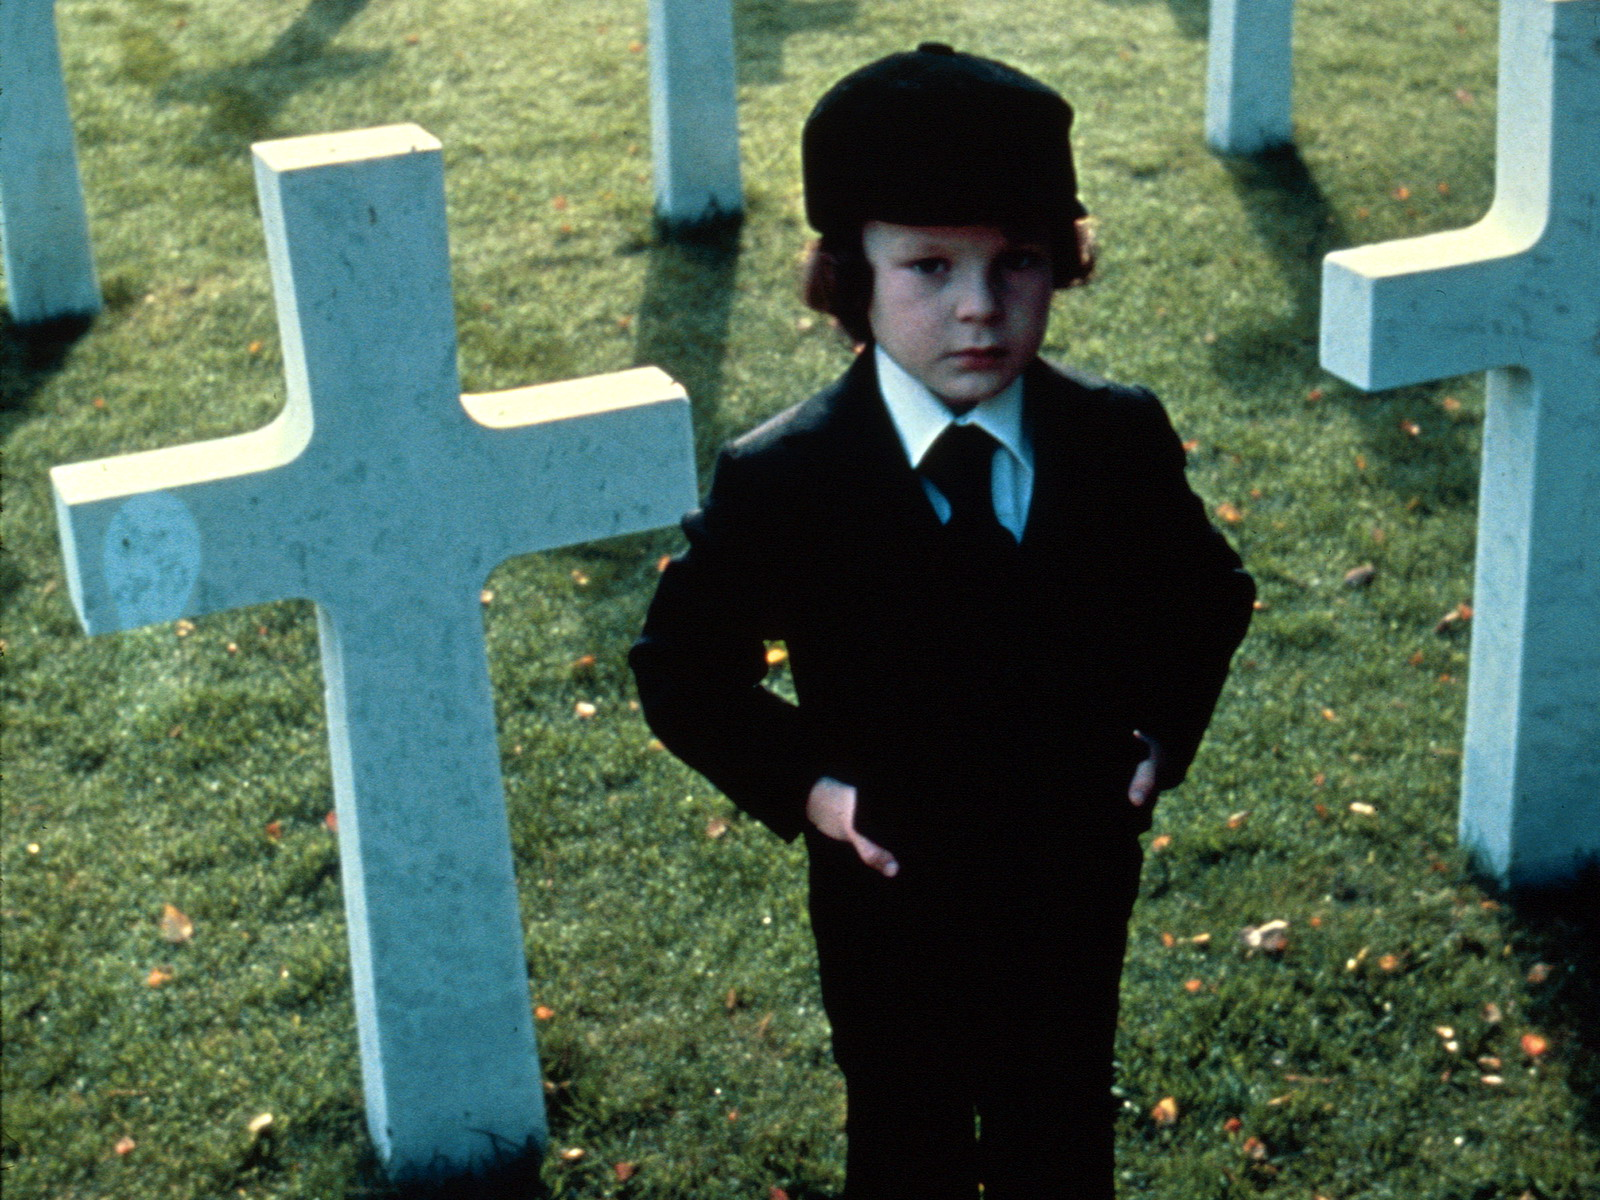 19958_omen_or_the-omen_1600x1200_(www.GdeFon.ru)